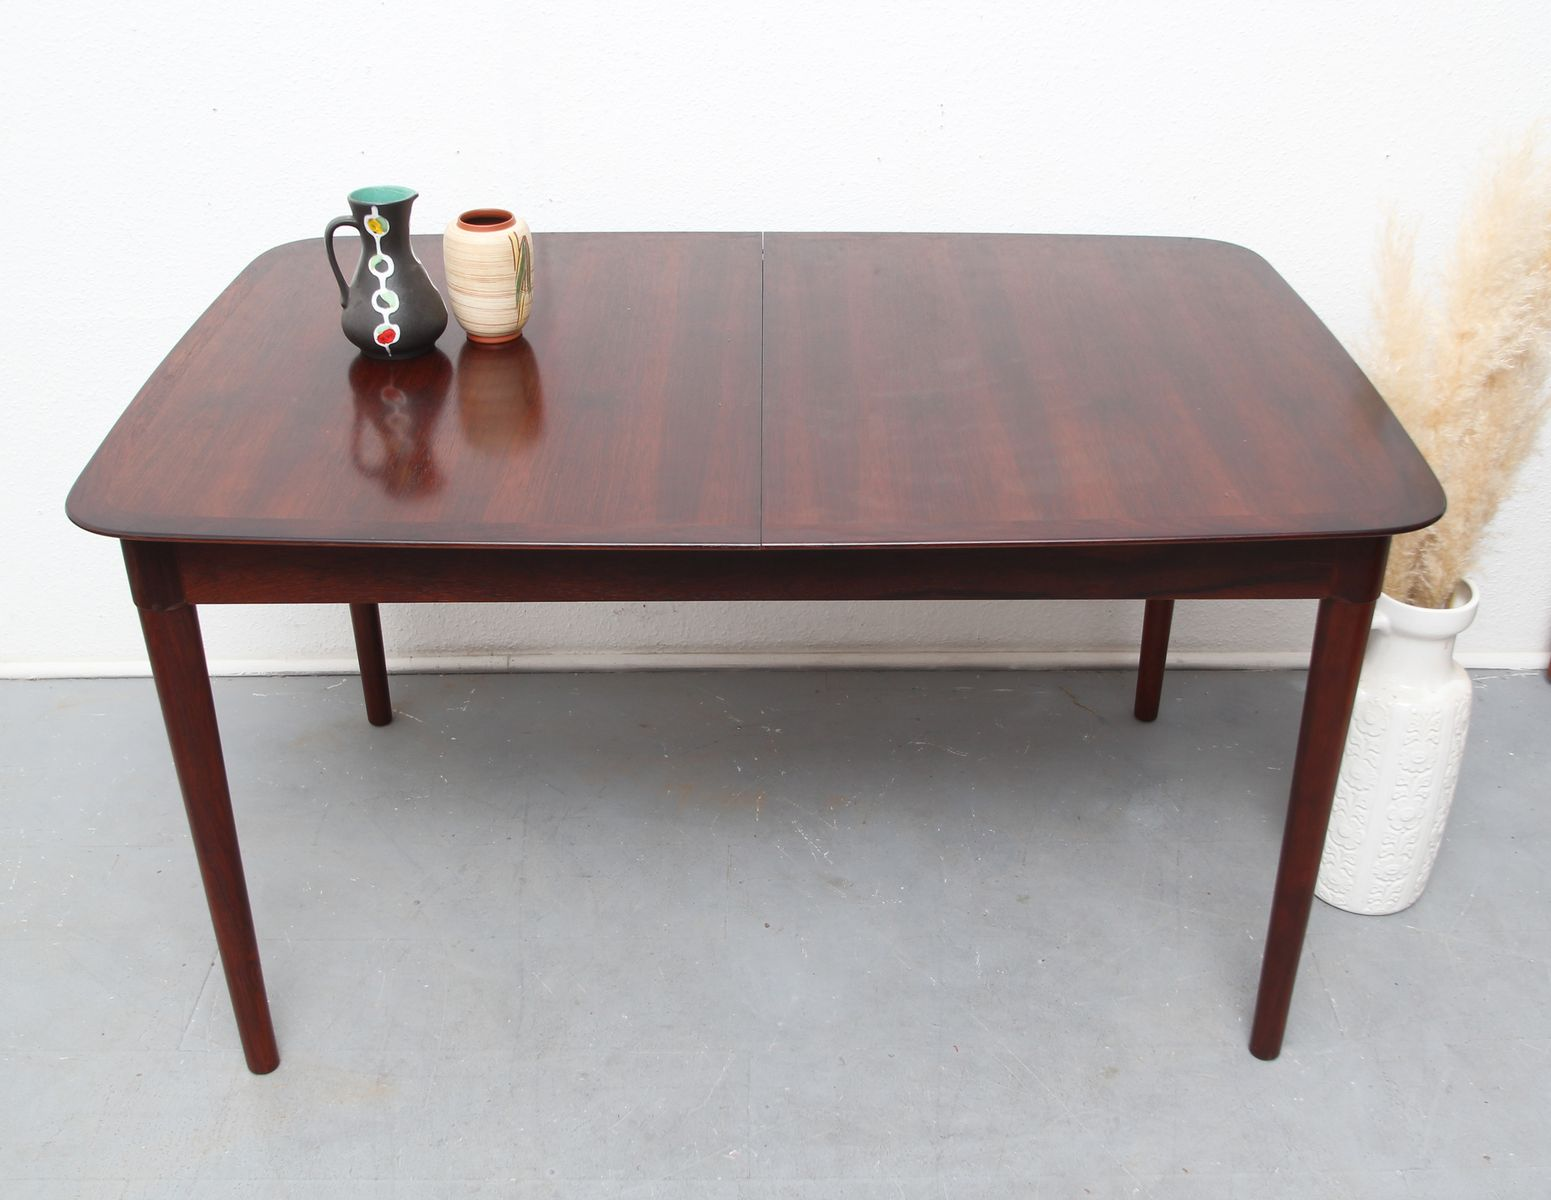 Rosewood Dining Table Vintage Extenable Rosewood Dining Table By L 1 4 Bke For Sale At Pamono